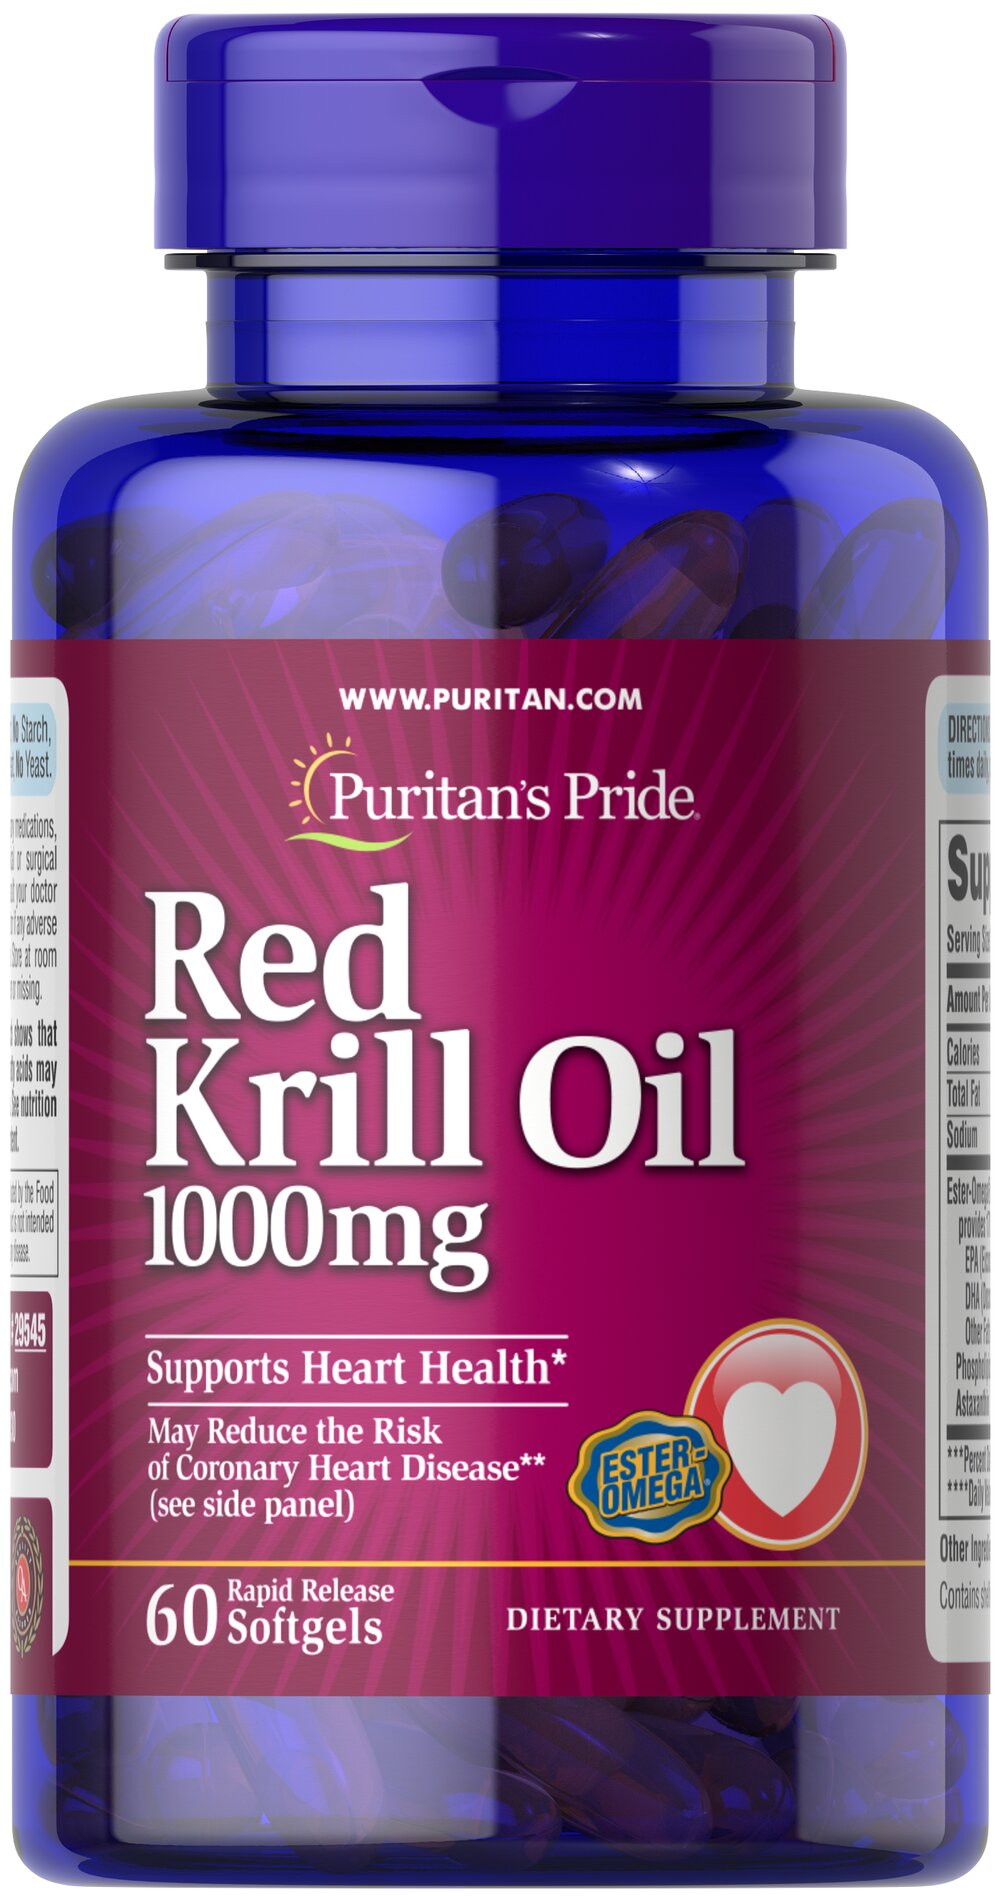 "Red Krill Oil 1000 mg (170 mg Active Omega-3) <p><strong>With Naturally Occurring Astaxanthin</strong></p><p>Harvested from the icy waters of Antarctica.</p><p>May reduce the risk of coronary heart disease◊</p><p>Supports a healthy heart**</p><p>Provides you with Omega-3 fatty acids — the ""good"" fats important for cellular and metabolic health**</p><p>Rapid release softgels facilitate quick absorption</p> 60 Soft"